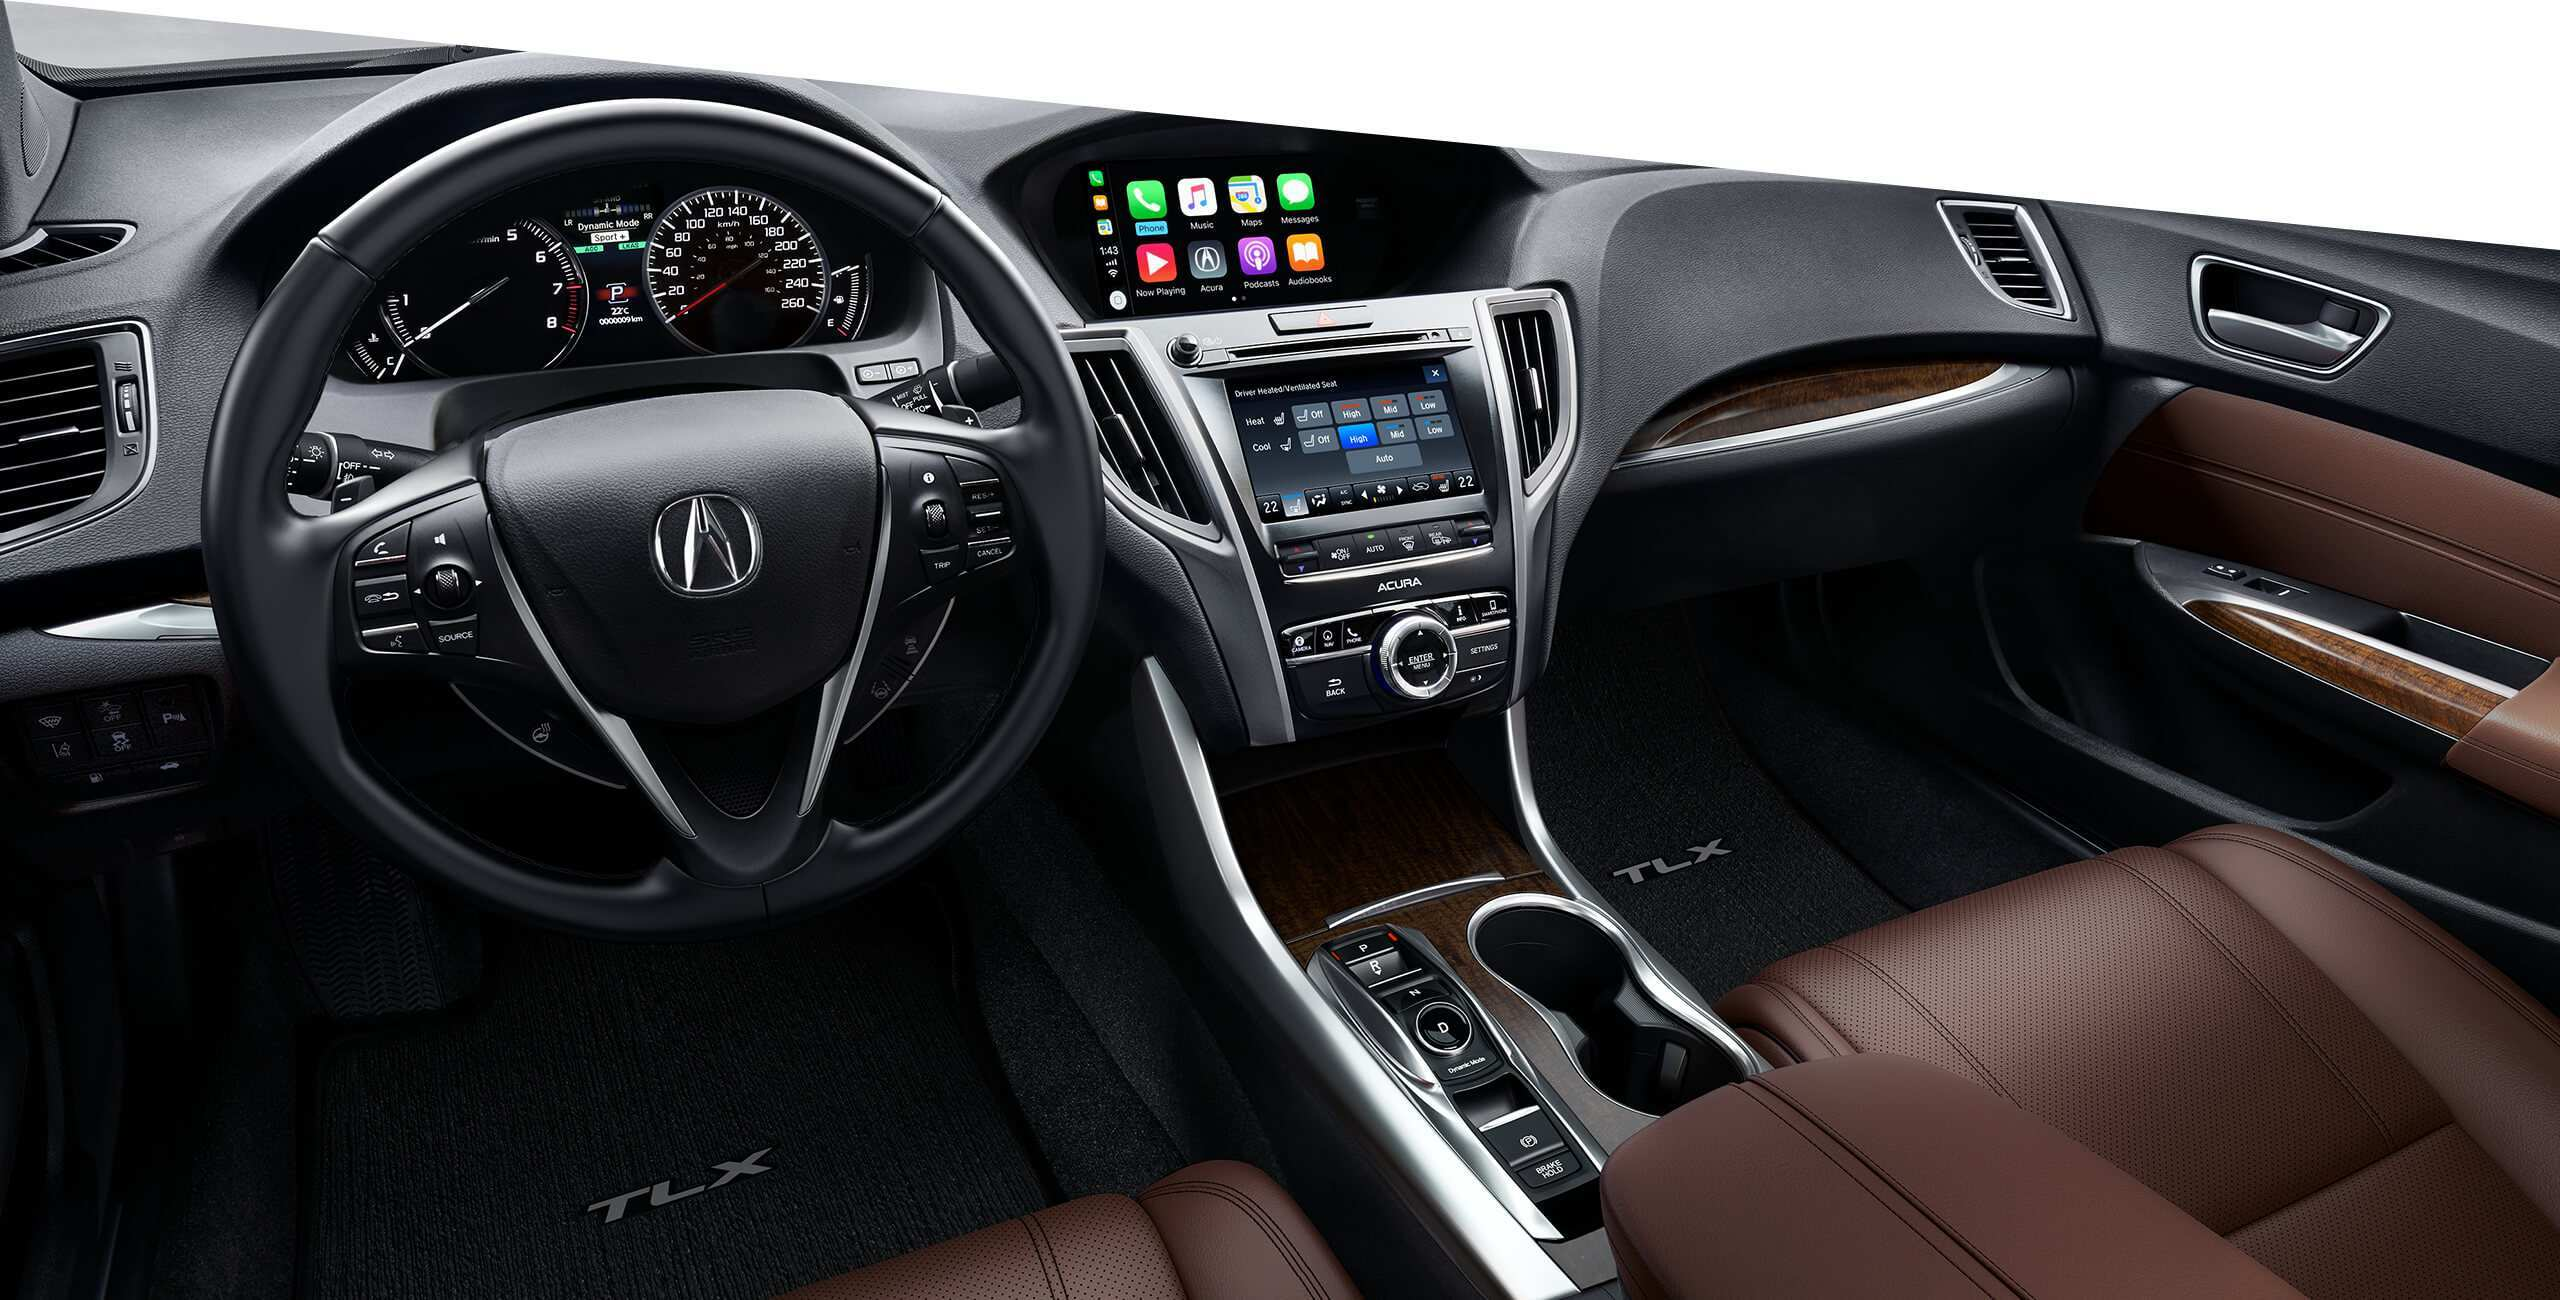 56 New 2020 Acura Mdx Interior New Concept for 2020 Acura Mdx Interior